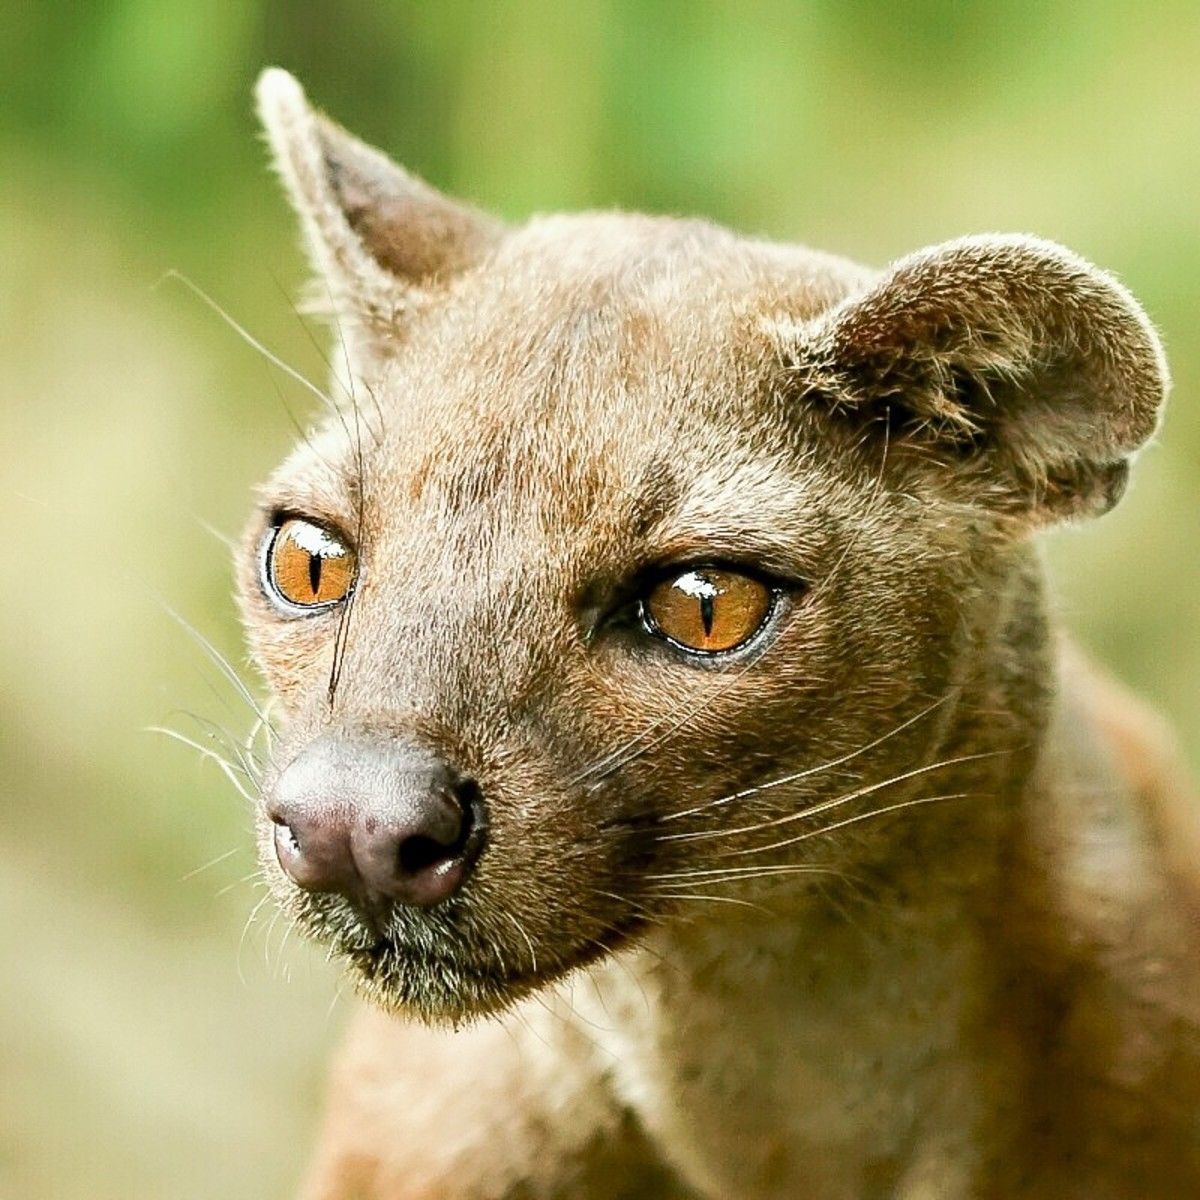 The Fossa - A Cat-Like Mongoose Relative in Madagascar